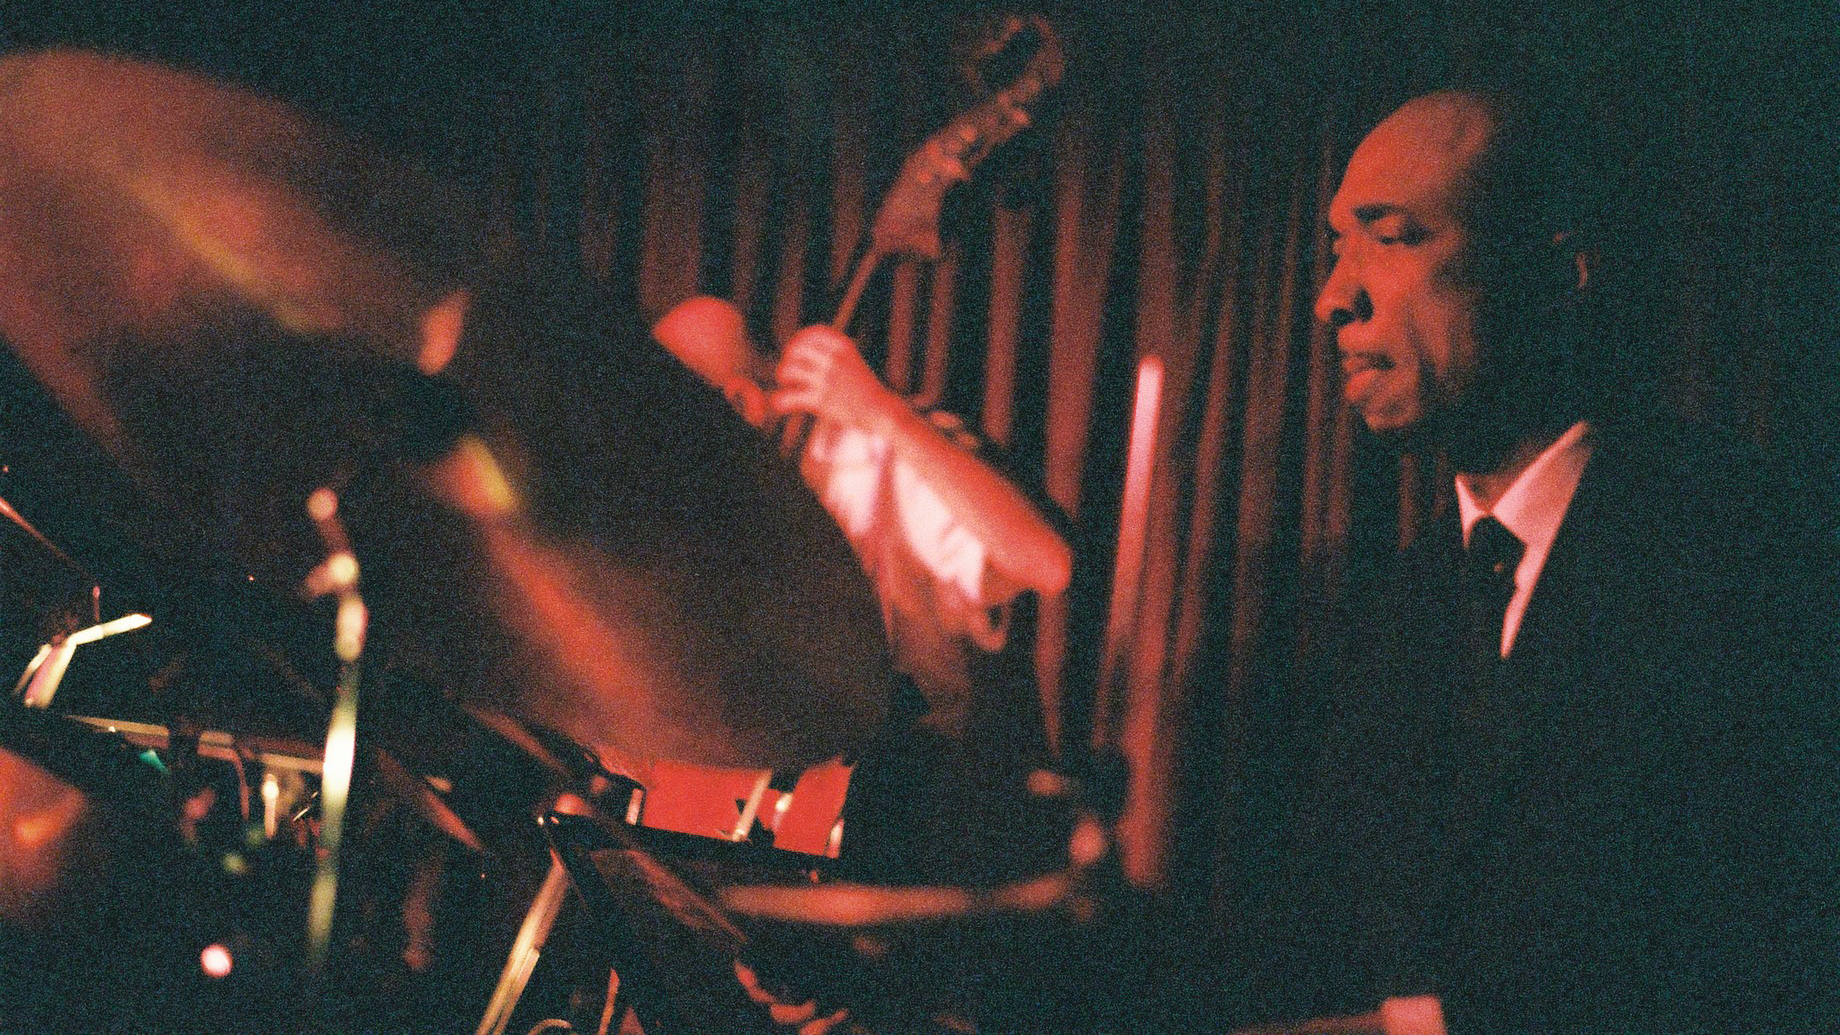 Performance by the Fred Hersch Trio w/ Joe Lovano at the legendary Village Vanguard in New York. Taken on September 7, 2013